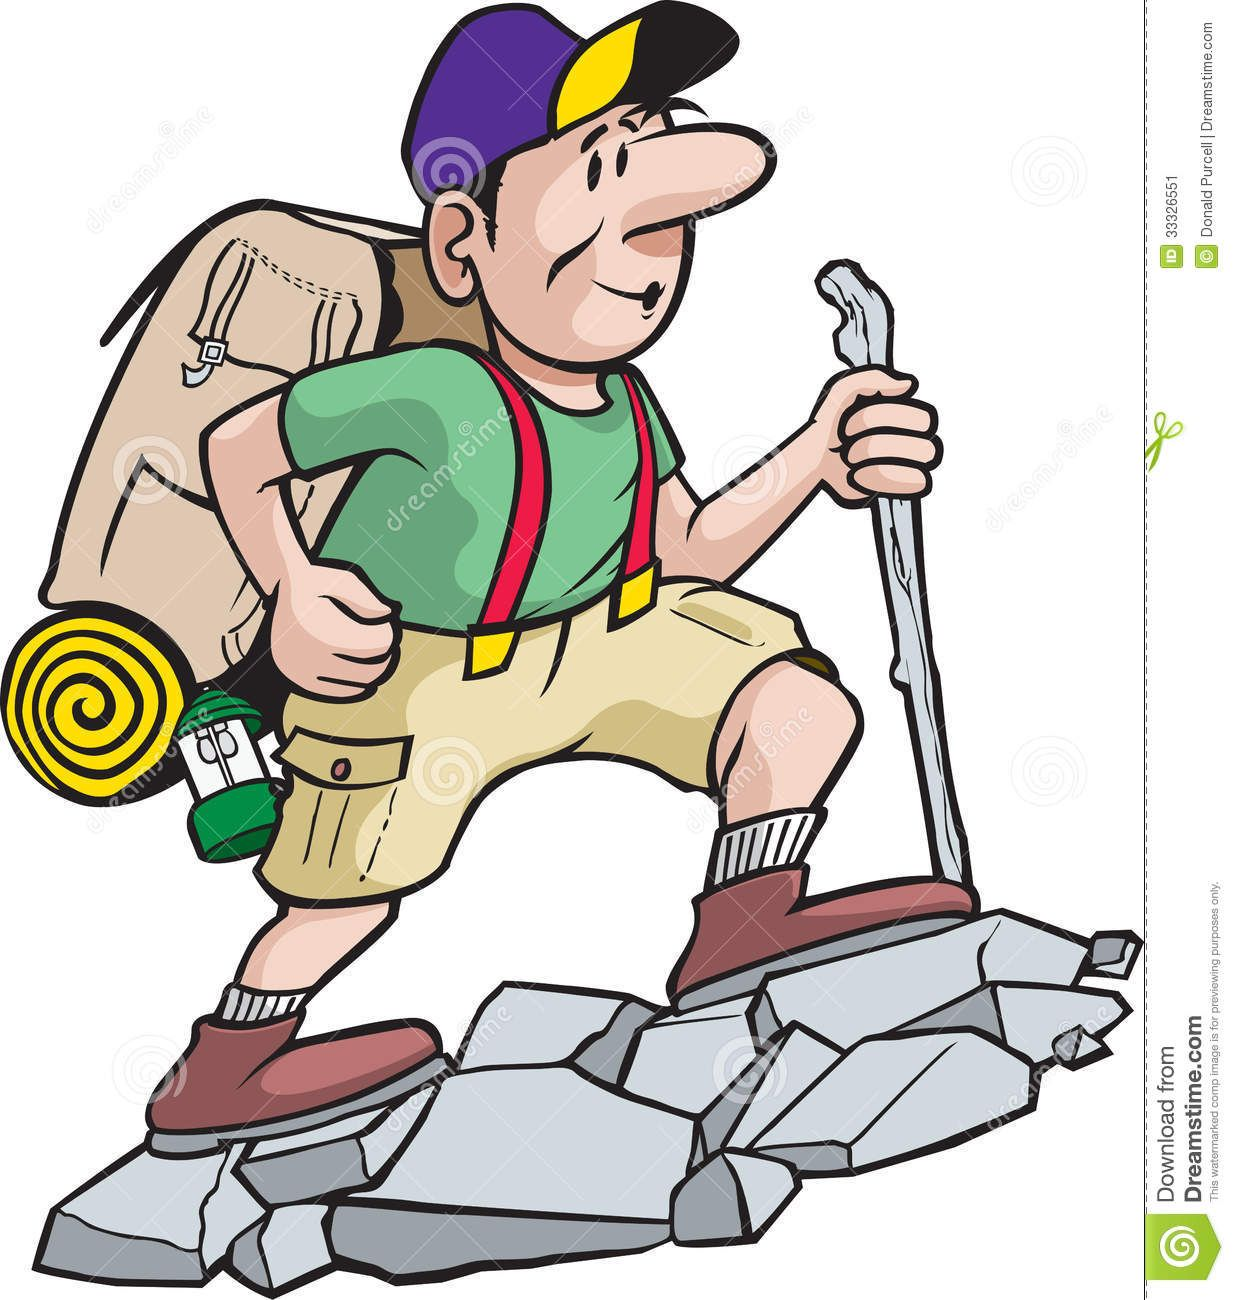 image result for mountain hiker clipart hikers pinterest rh pinterest com mountain hiker clipart mountain hiker clipart